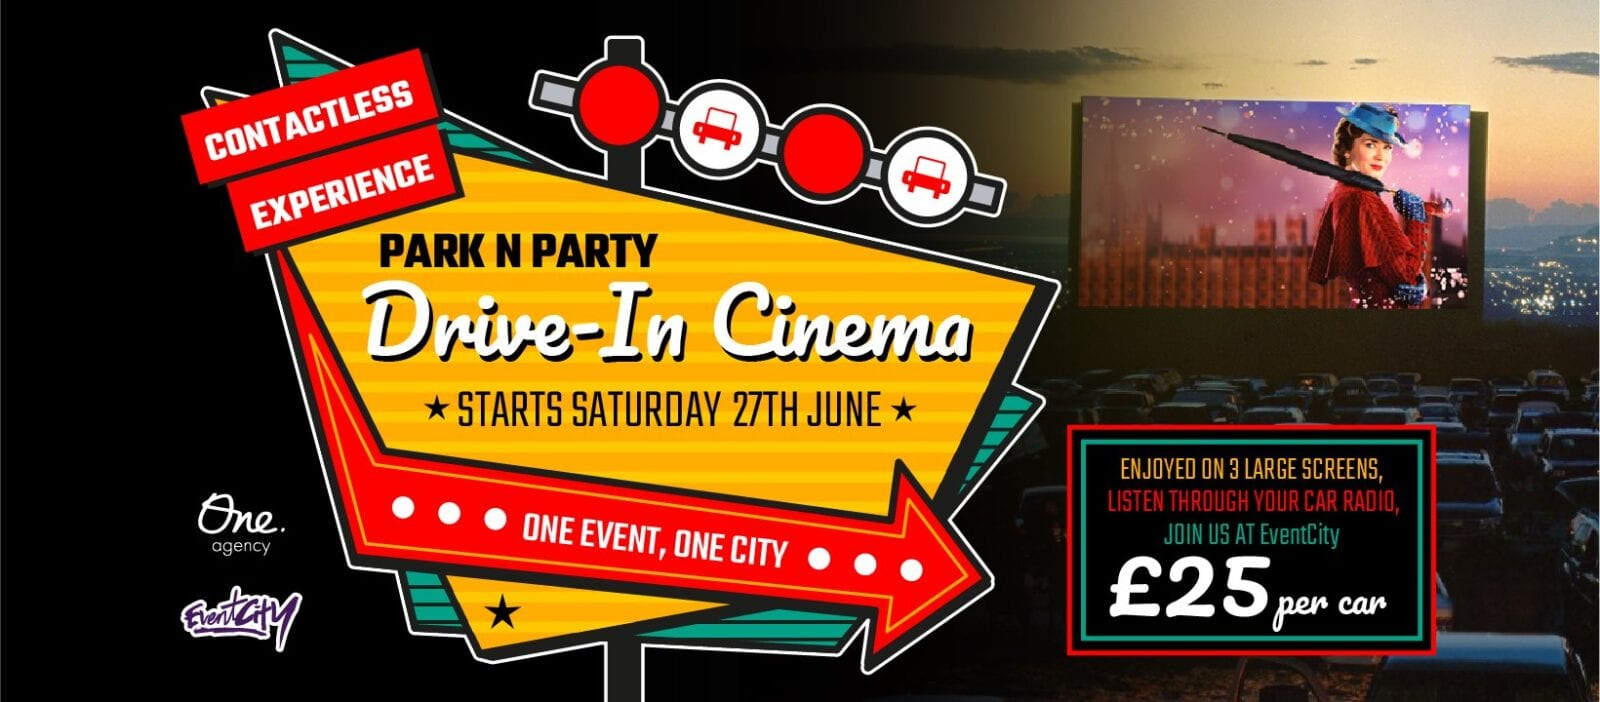 Park N Party's drive-in cinema is screening some classic movies during Bank Holiday weekend, The Manc